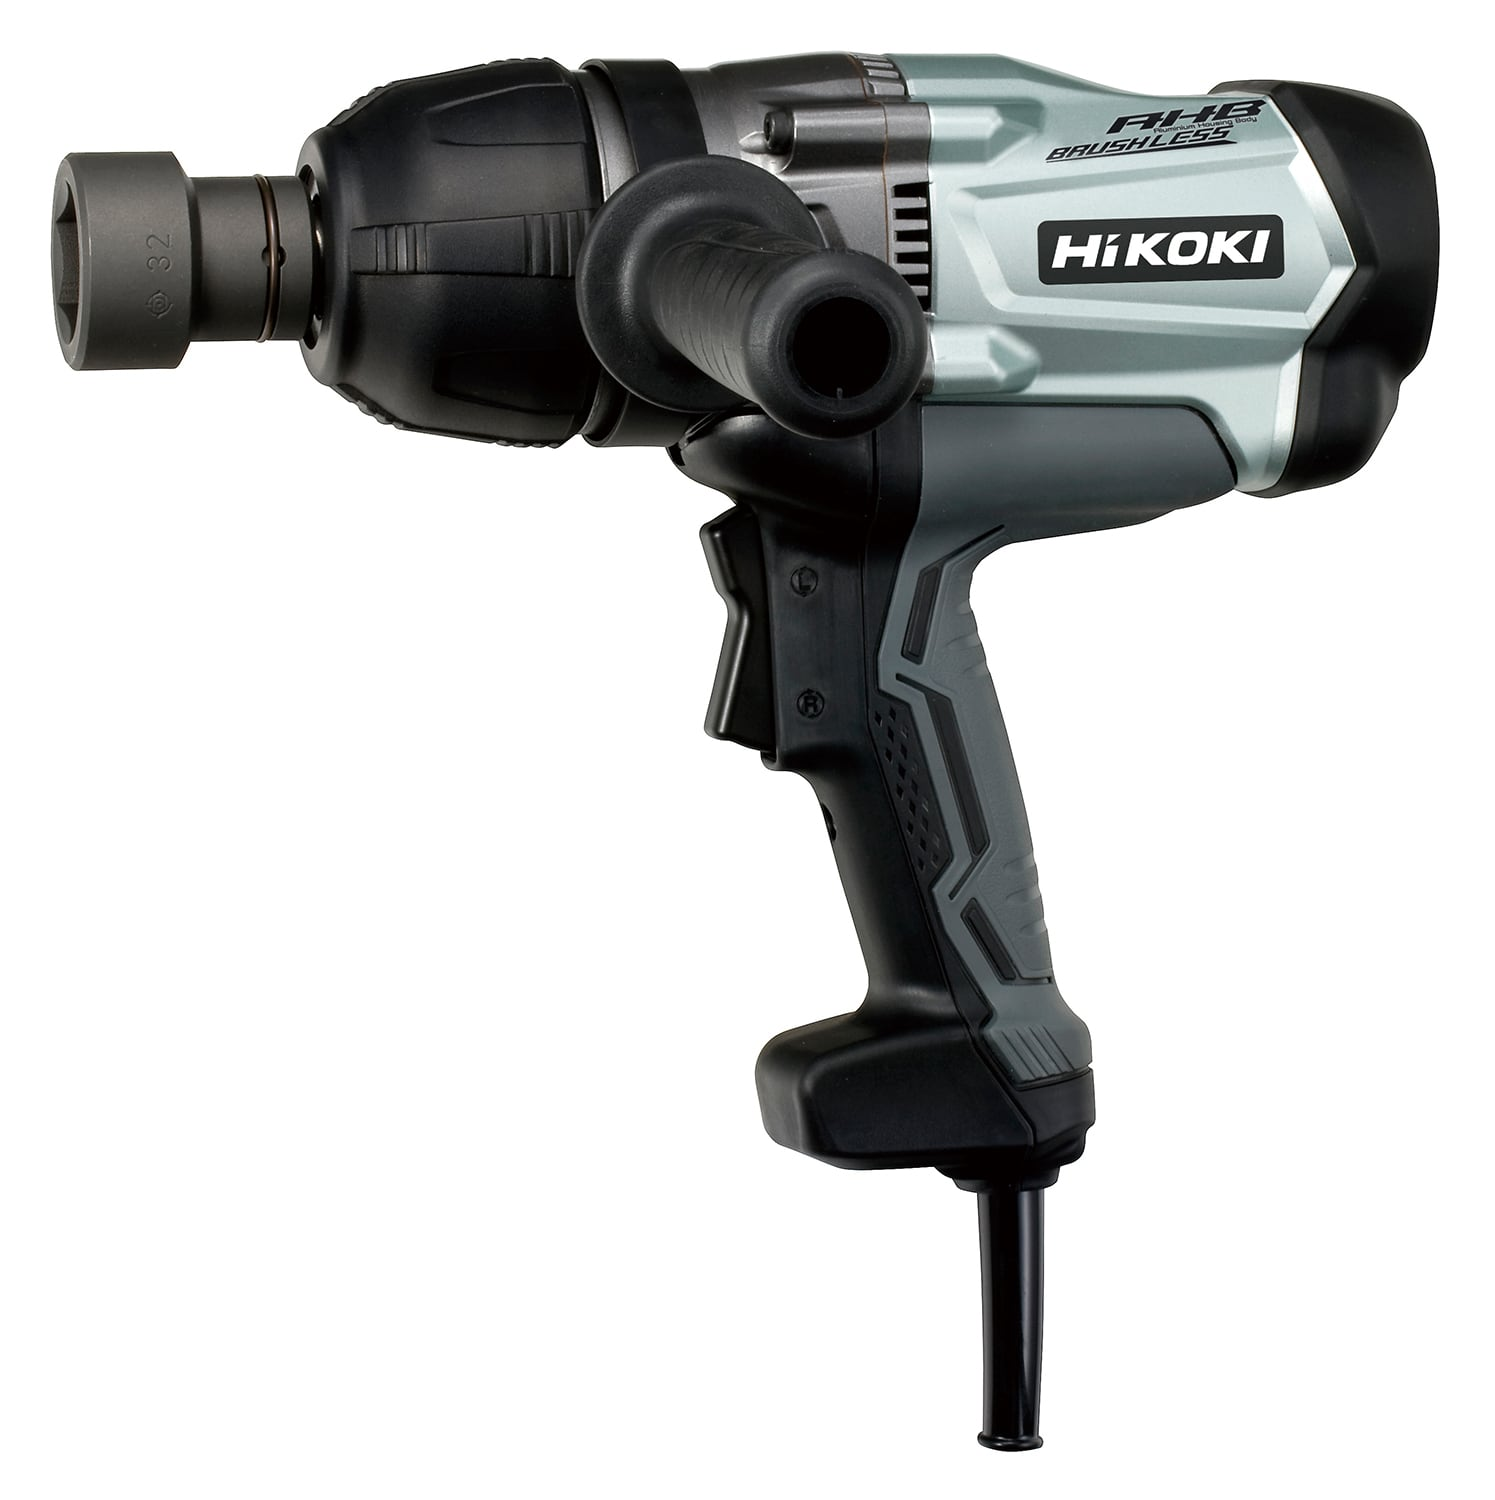 22mm inch Impact Wrench with Brushless Motor